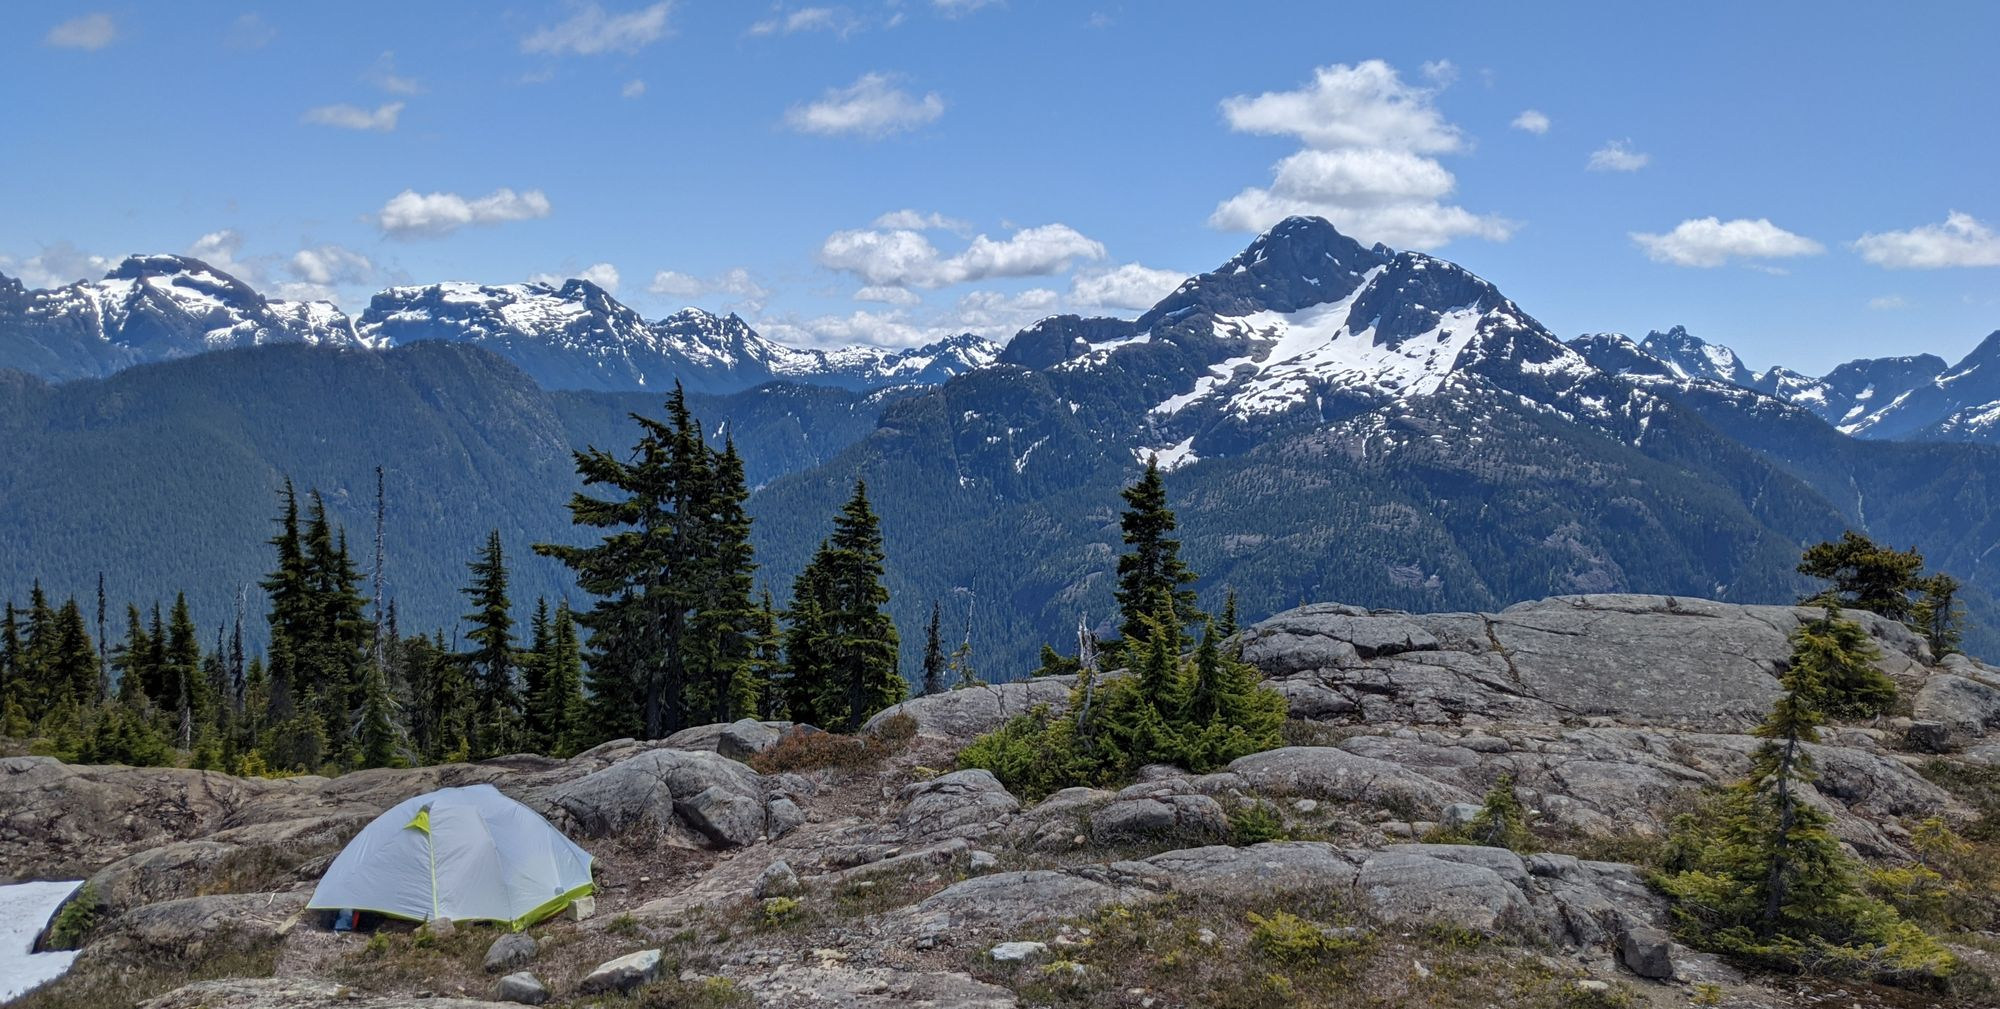 Camp views towards King's Peak